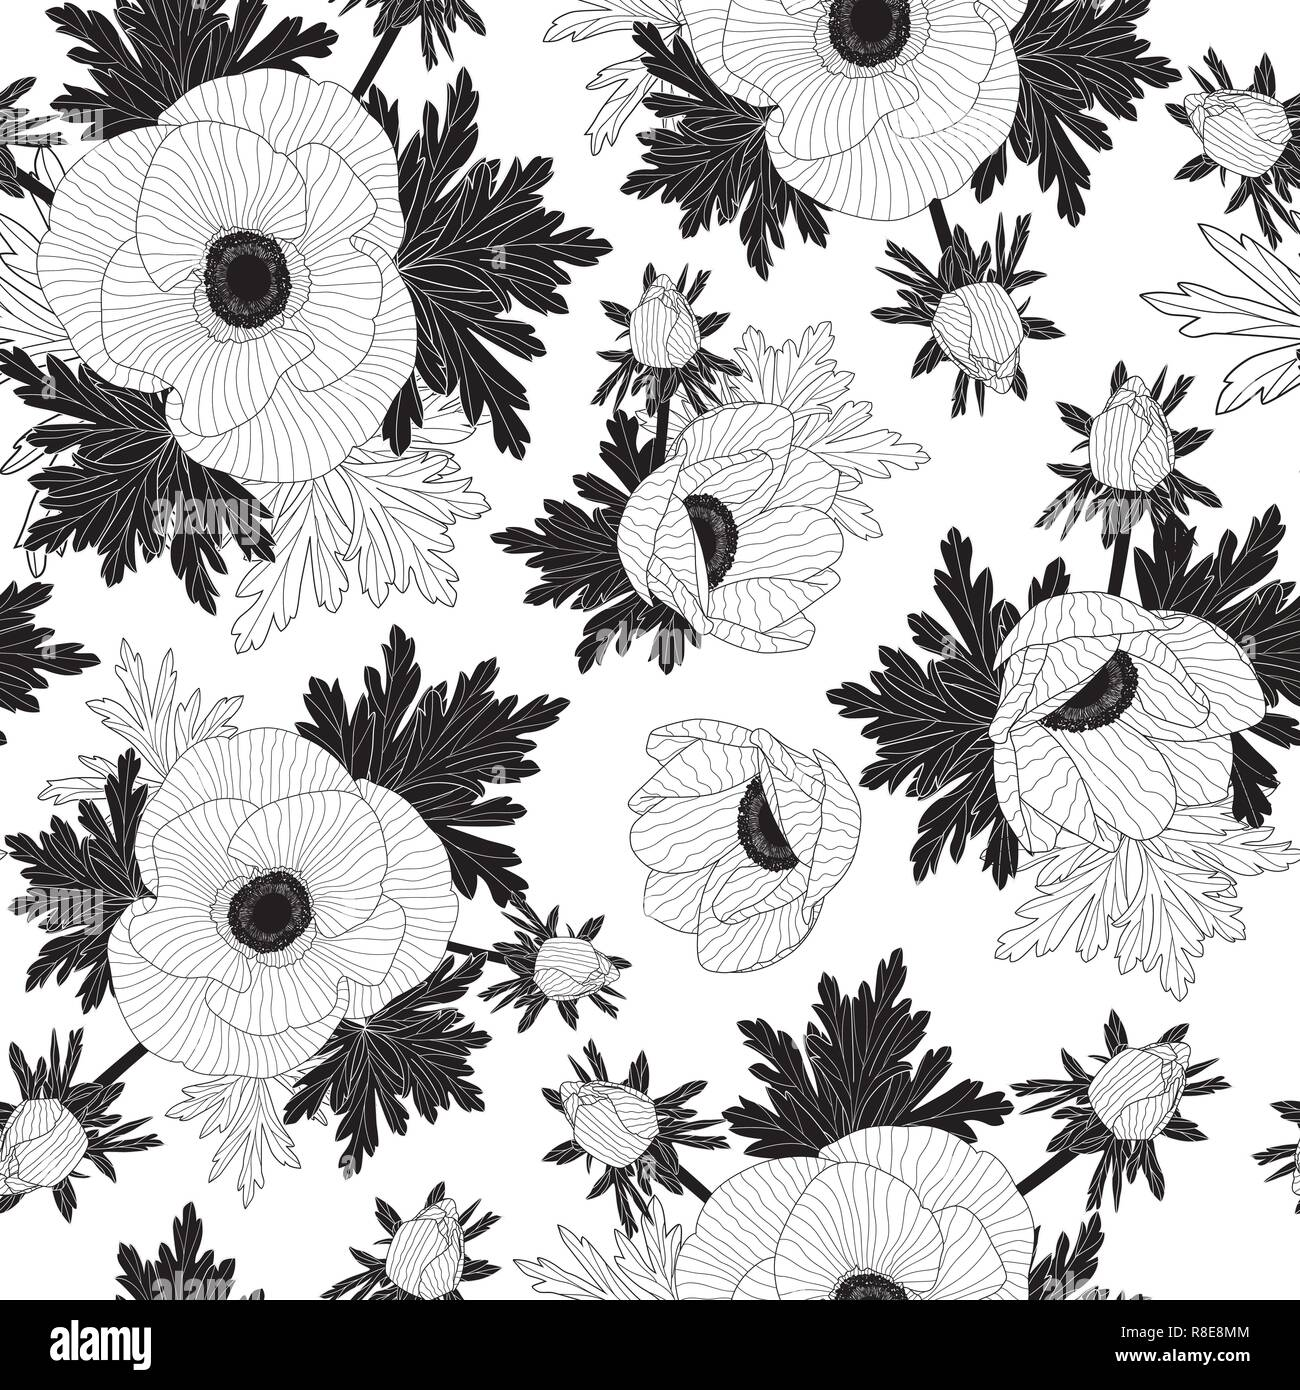 Floral seamless vector pattern with beautiful anemone flowers. - Stock Vector